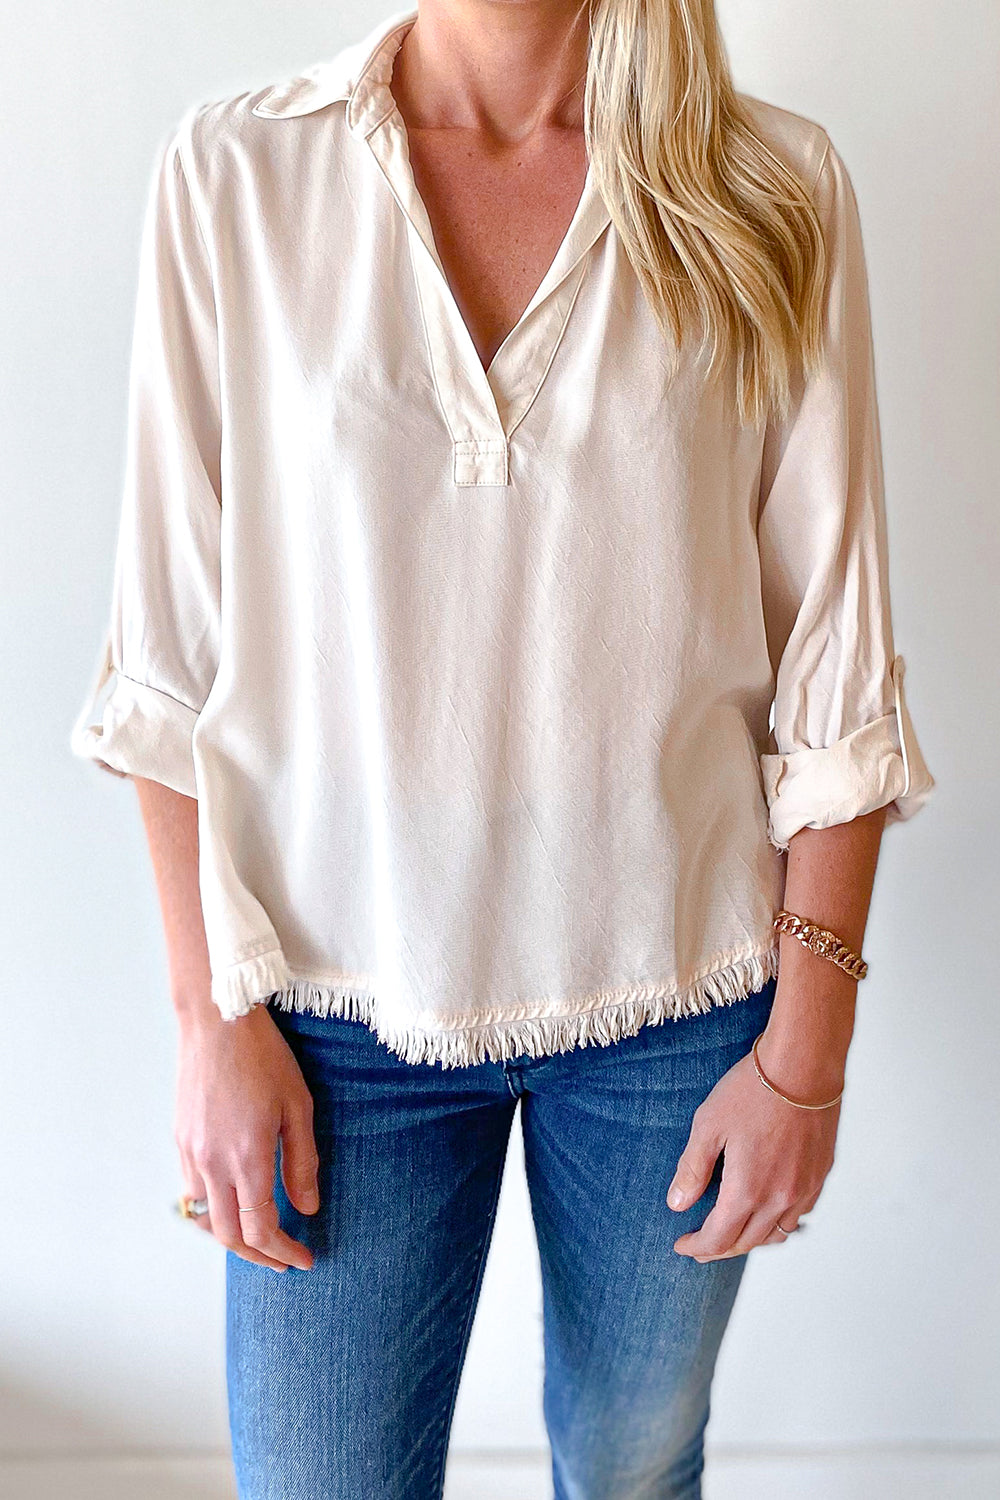 Silky Cream Top